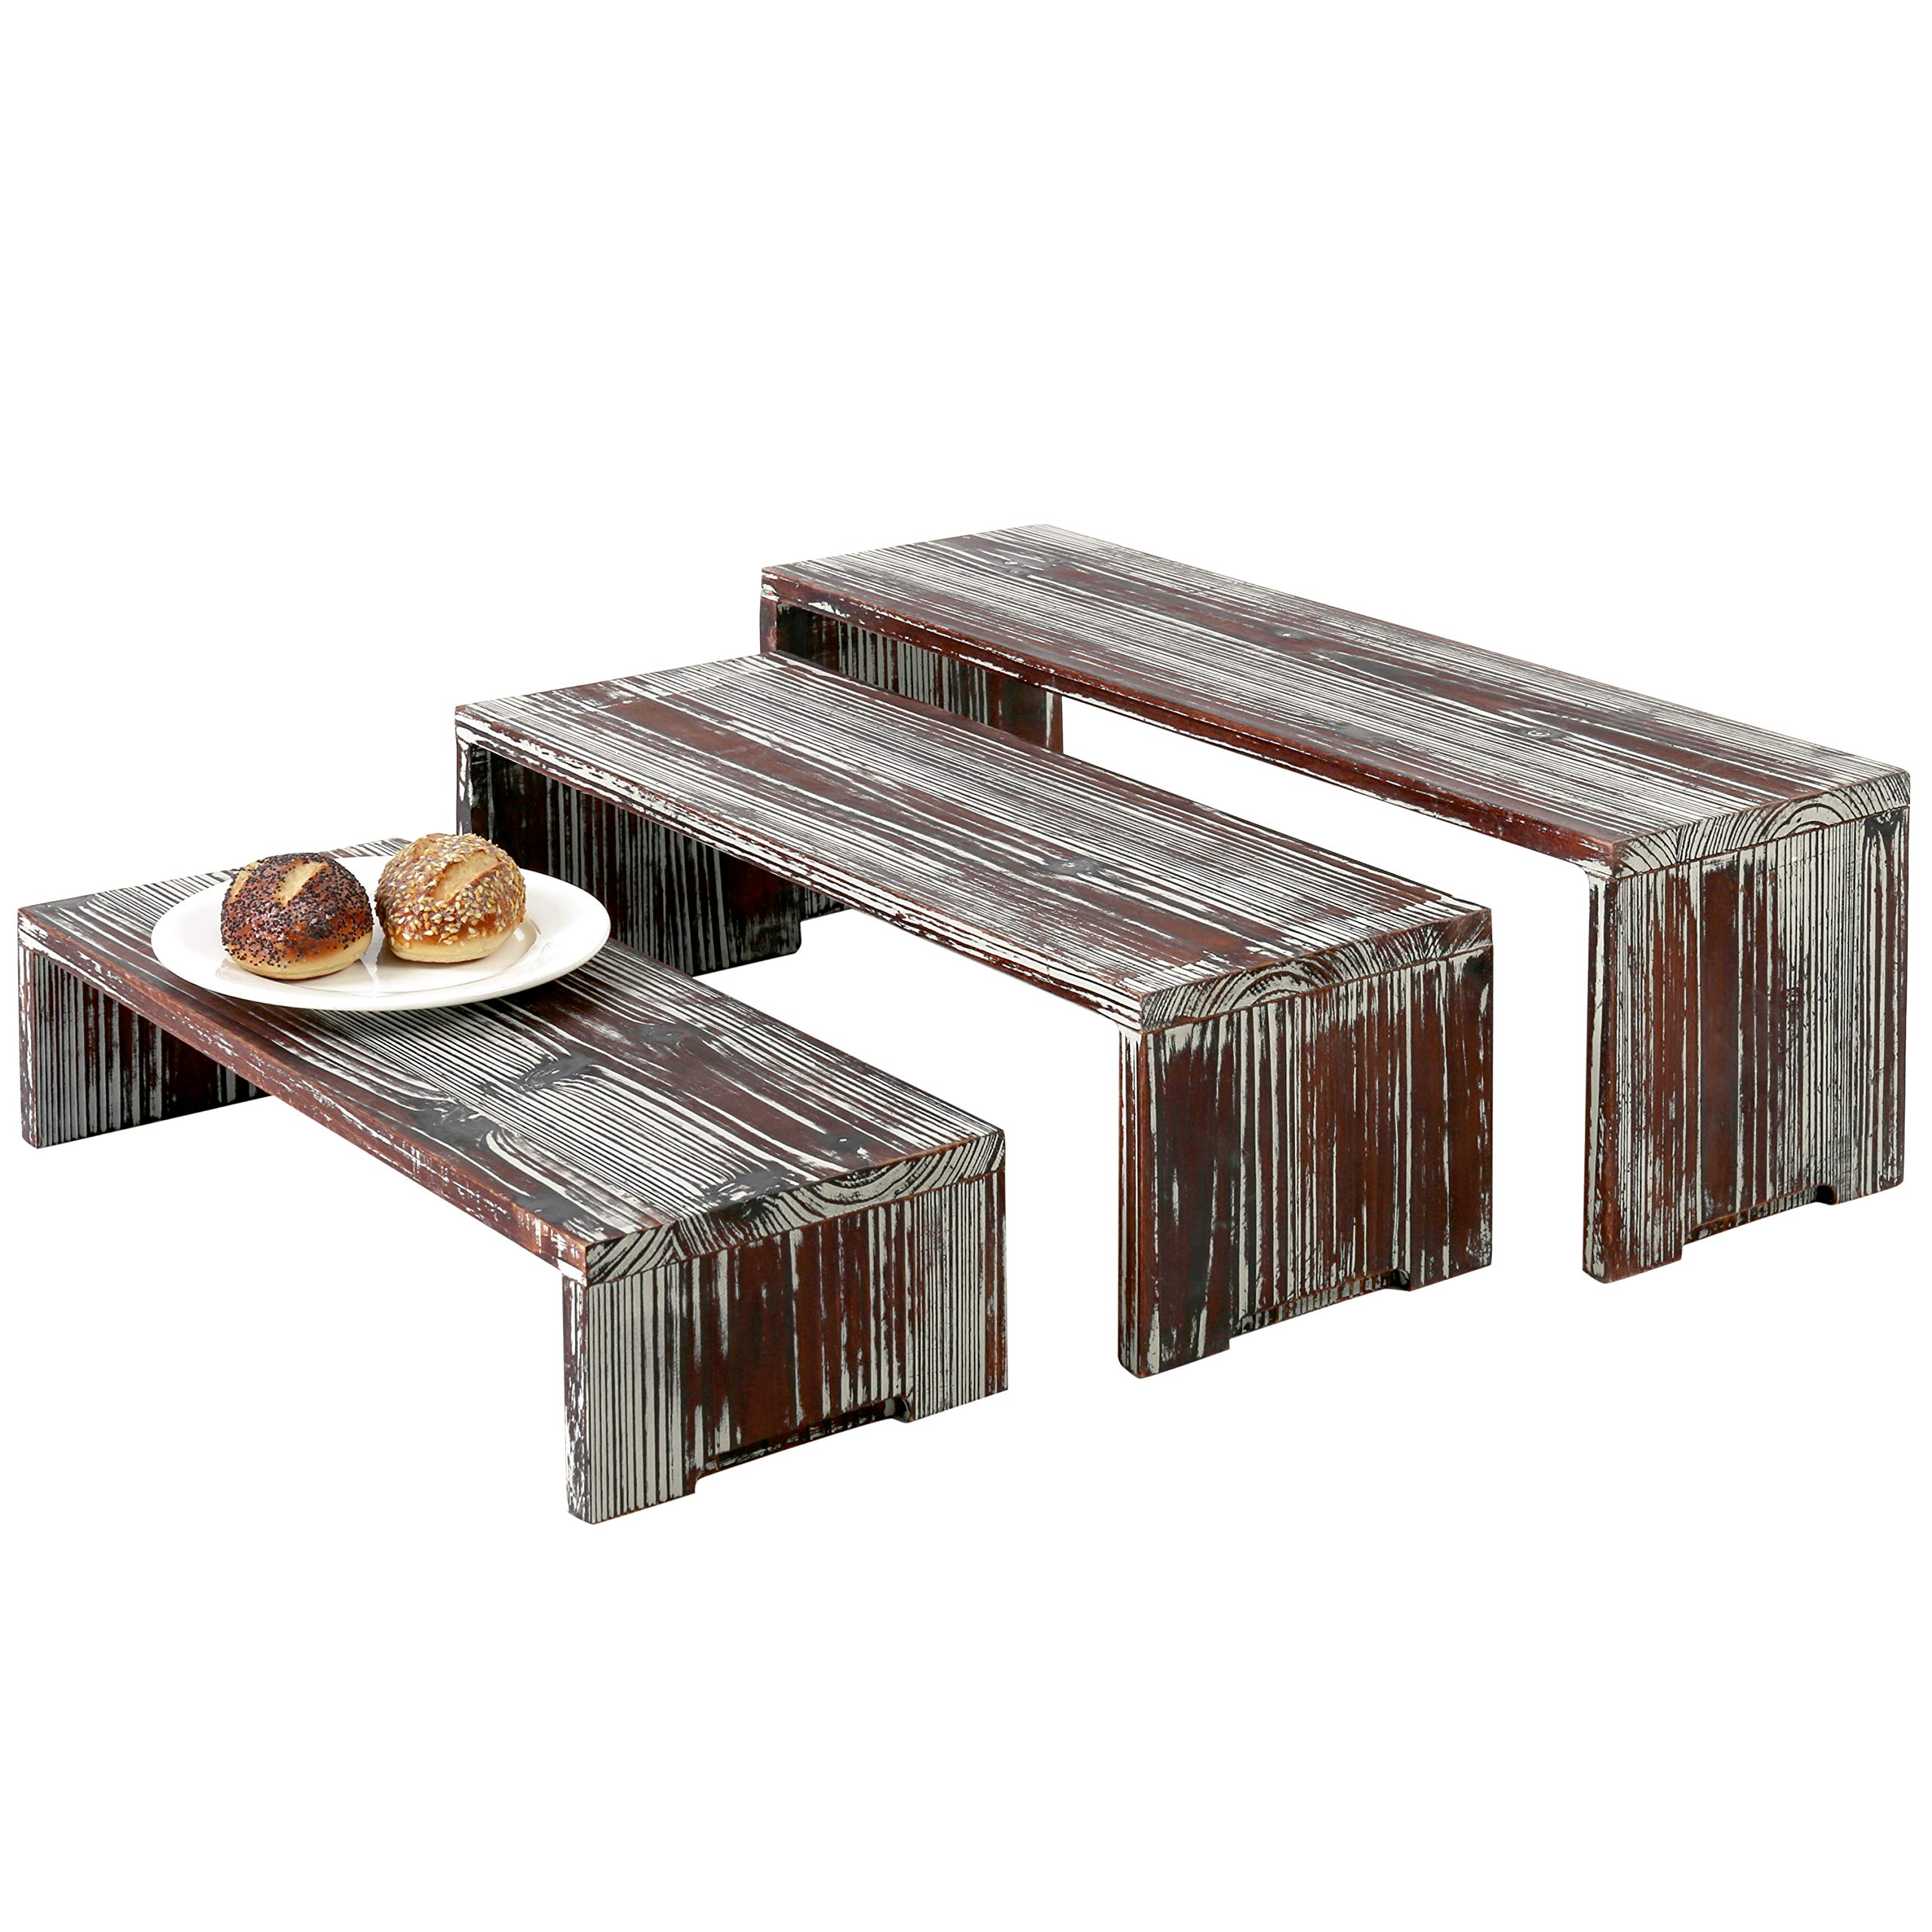 MyGift Set of 3 Torched Wood Retail Display Risers by MyGift